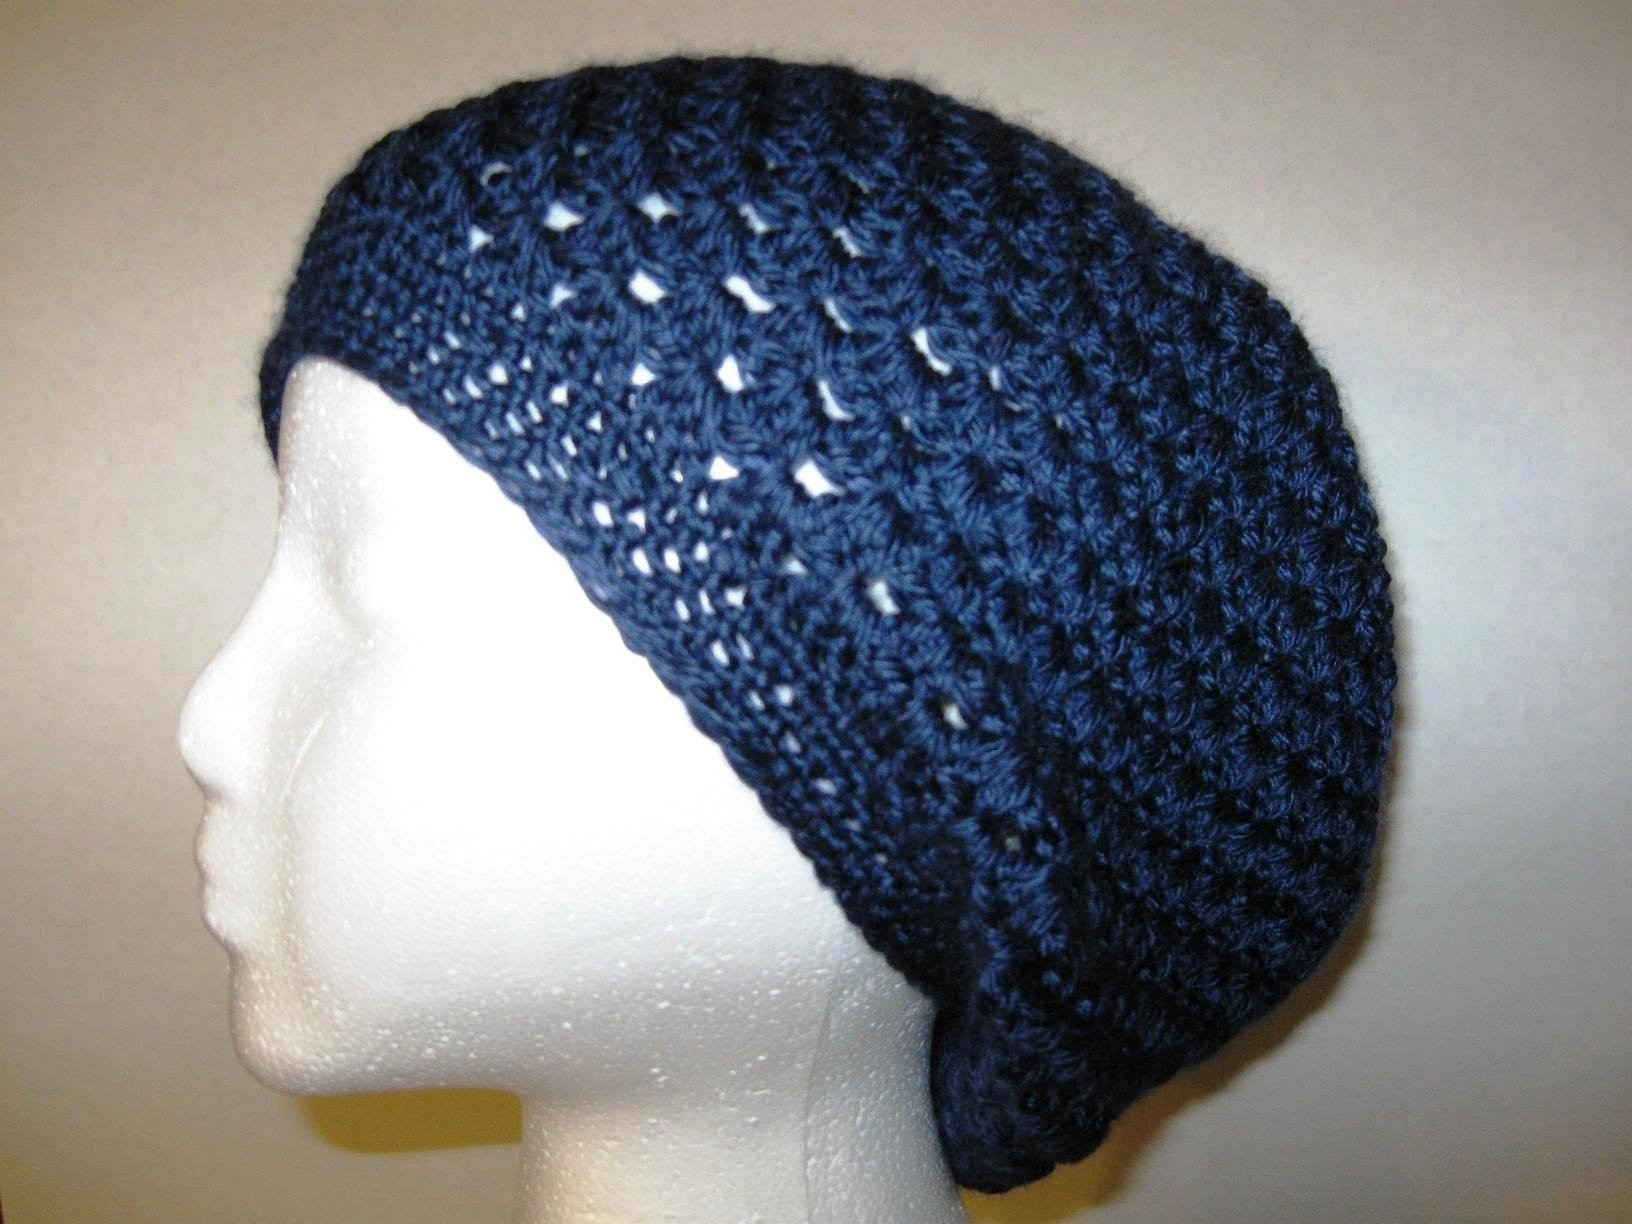 Crochet Chemo Hat Patterns Awesome Chemo Hat Crochet Pattern Patterns Of Luxury 40 Pictures Crochet Chemo Hat Patterns